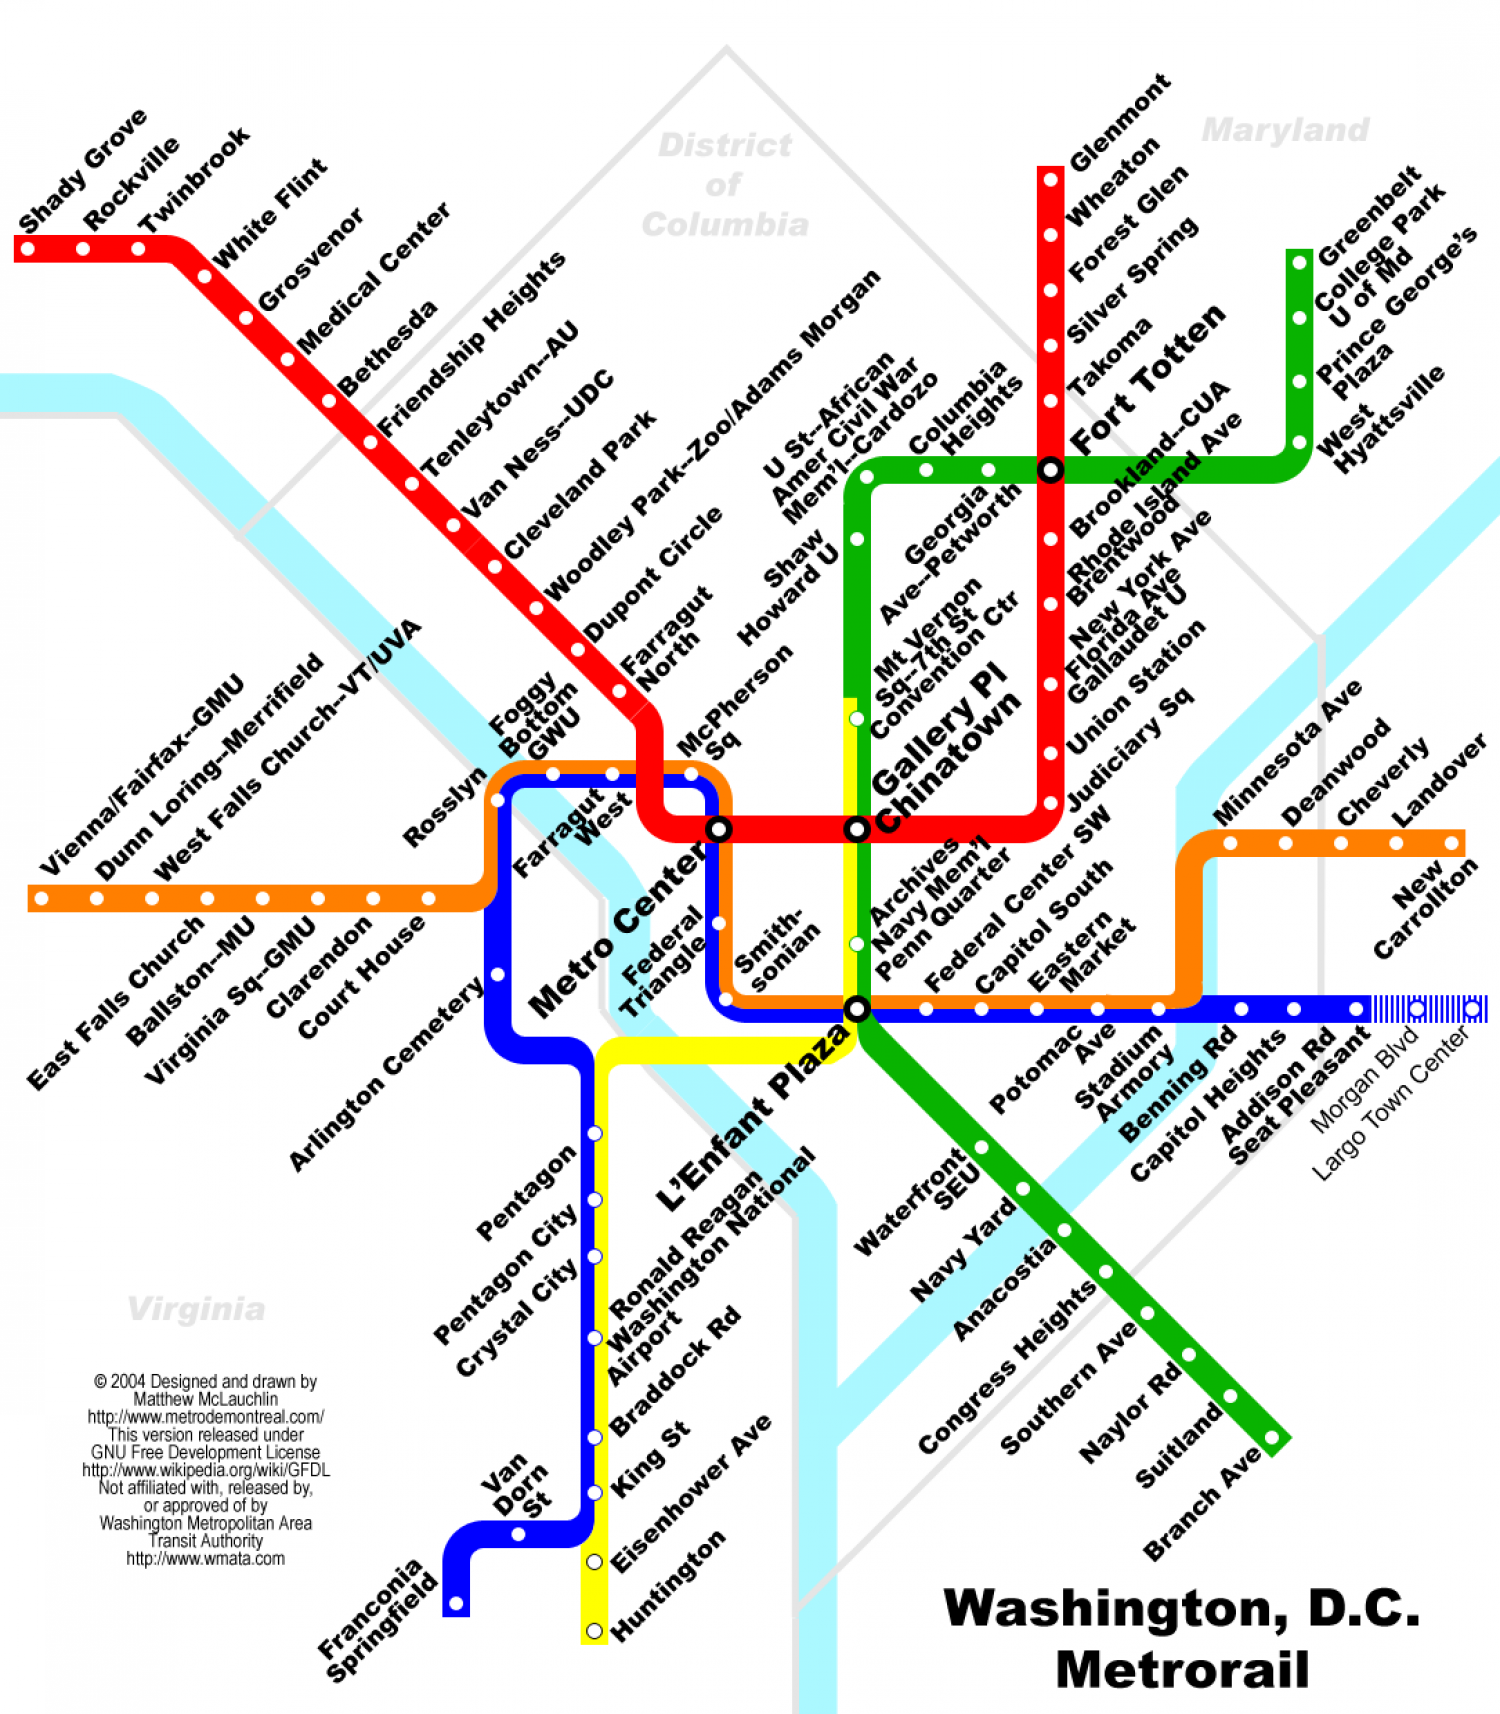 Washington D.C. metro map | Visual.ly on washington geography map, chichagof island alaska map, washington land features, washington forest fire map, washington agriculture map, washington map potholes, washington county map, mossyrock washington map, washington game management unit map, hunter washington map, washington lighthouse map, washington wine regions map, washington national forest map, george mason university campus map, washington idaho-montana map, washington game unit 175 map, washington gas map, washington state, wa elk hunting areas map, washington on a map,